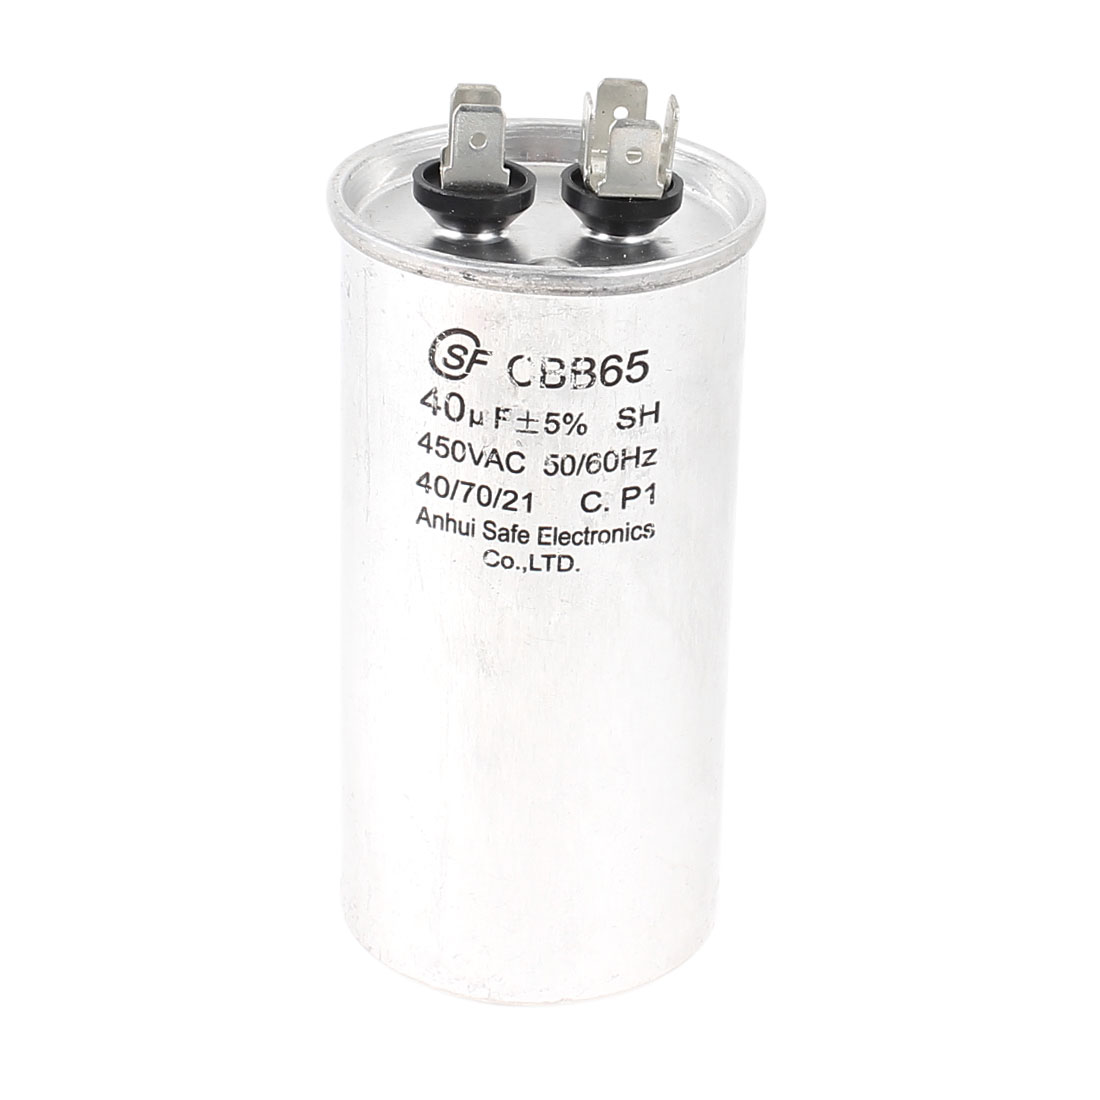 AC 450V 40uF 5% 50/60Hz 6 Terminals Cylinder Shaped Air Conditioner Motor Run Capacitor CBB65 Silver Tone